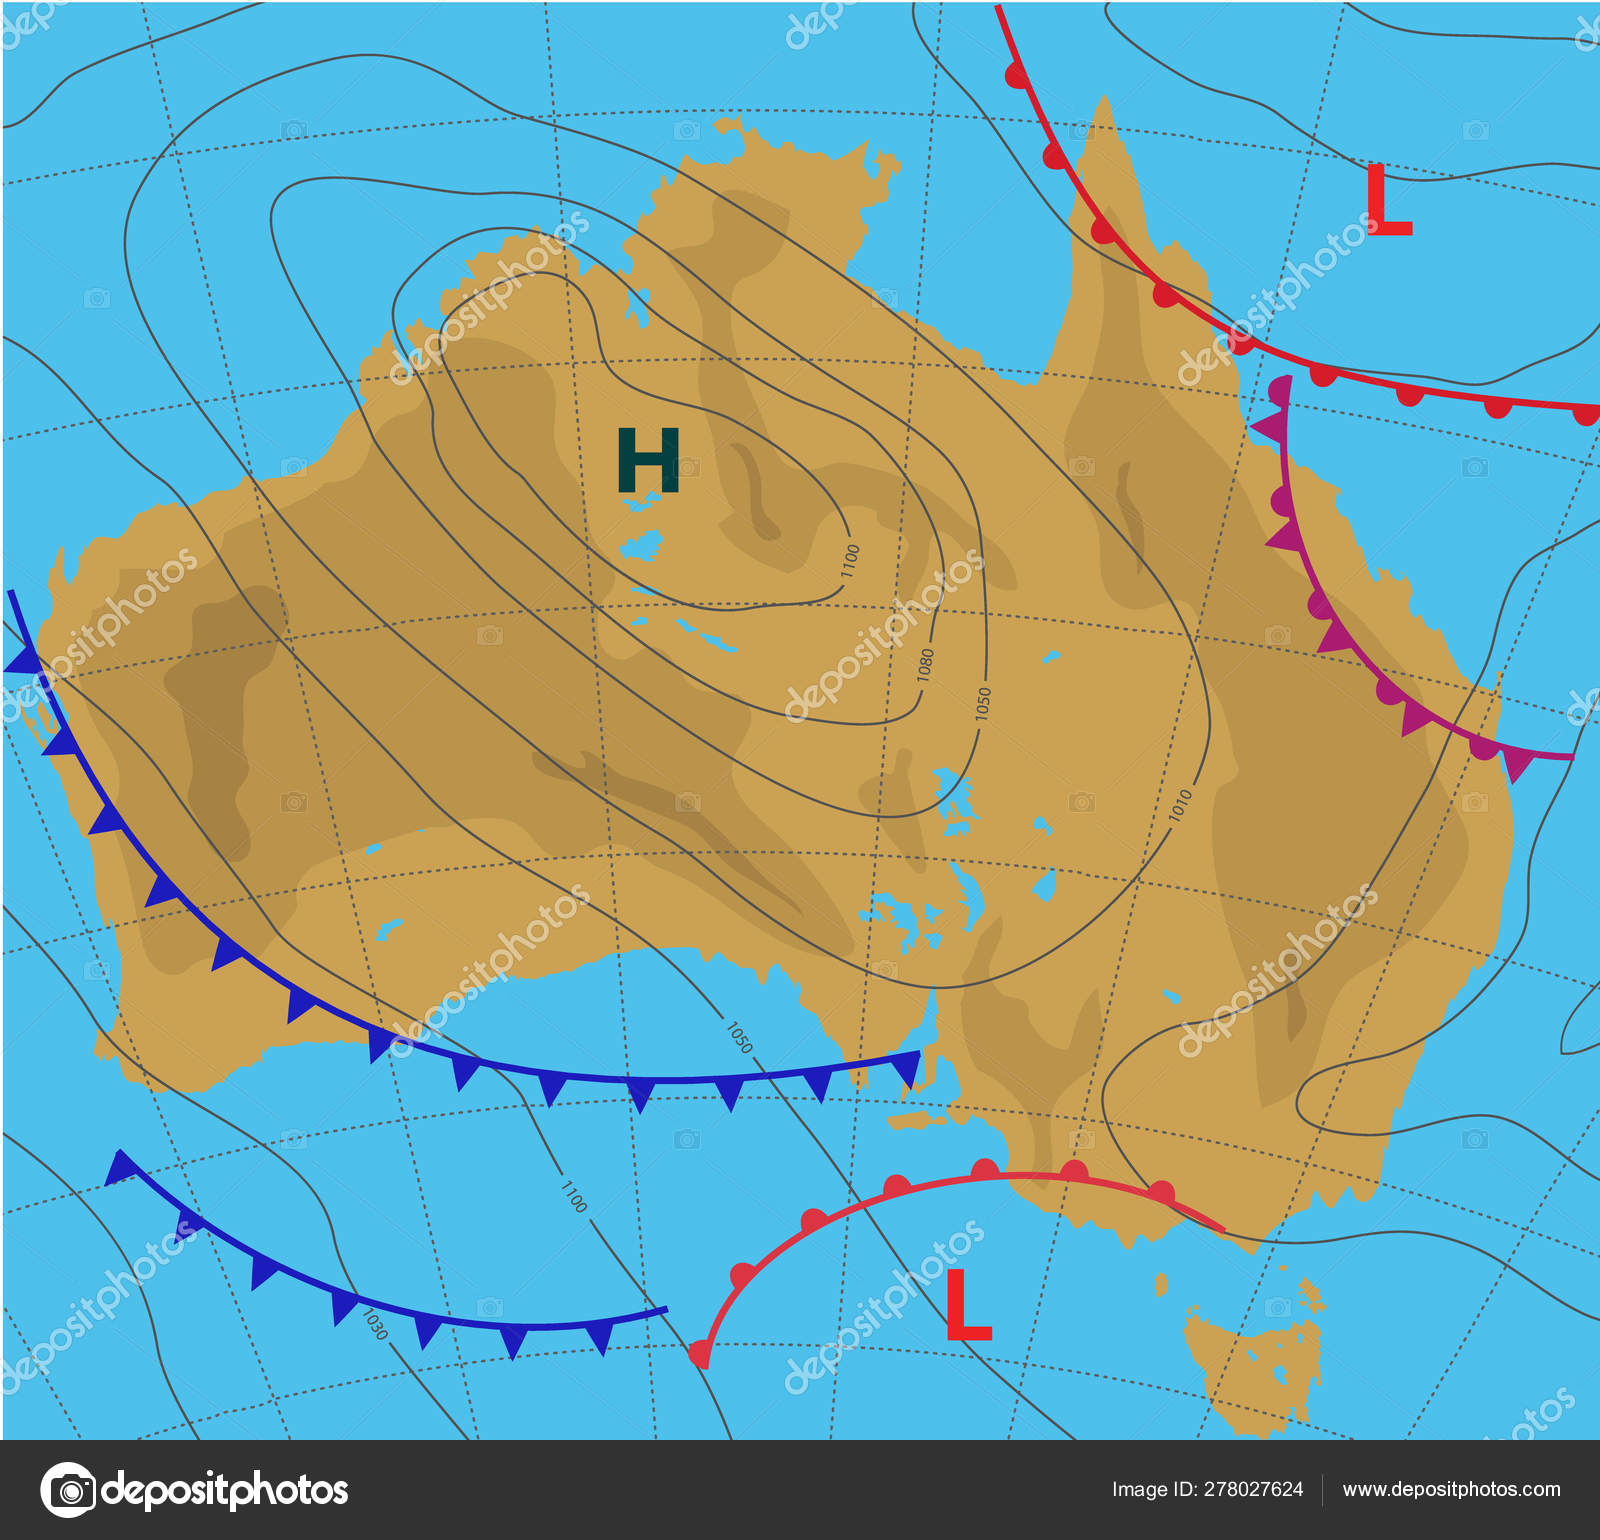 Australia Country Map.Weather Forecast Map Of Australia Meteorological Plan Of The